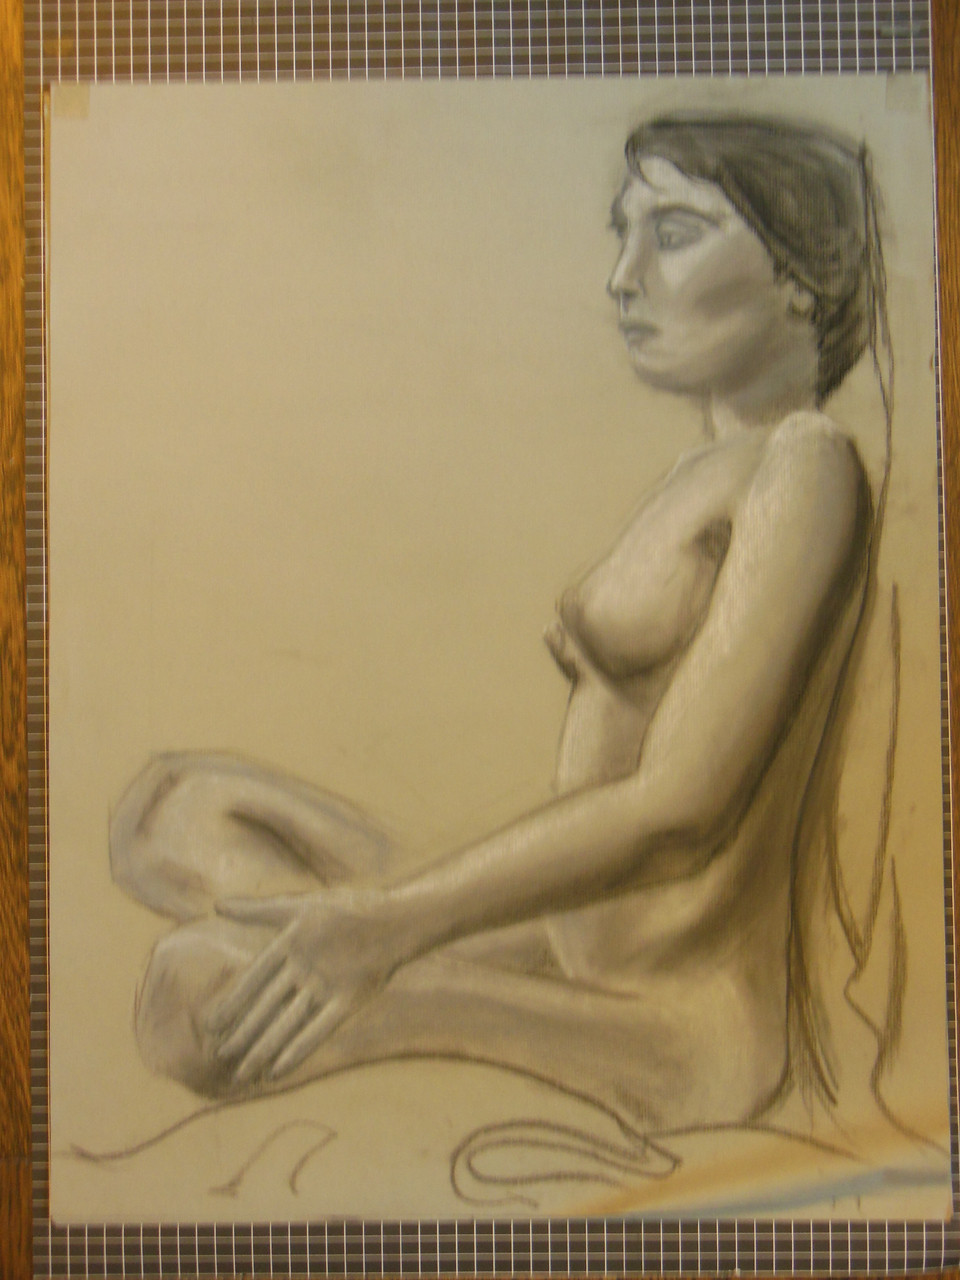 Nude Drawing: Charcoal & pastel on grey paper. 12